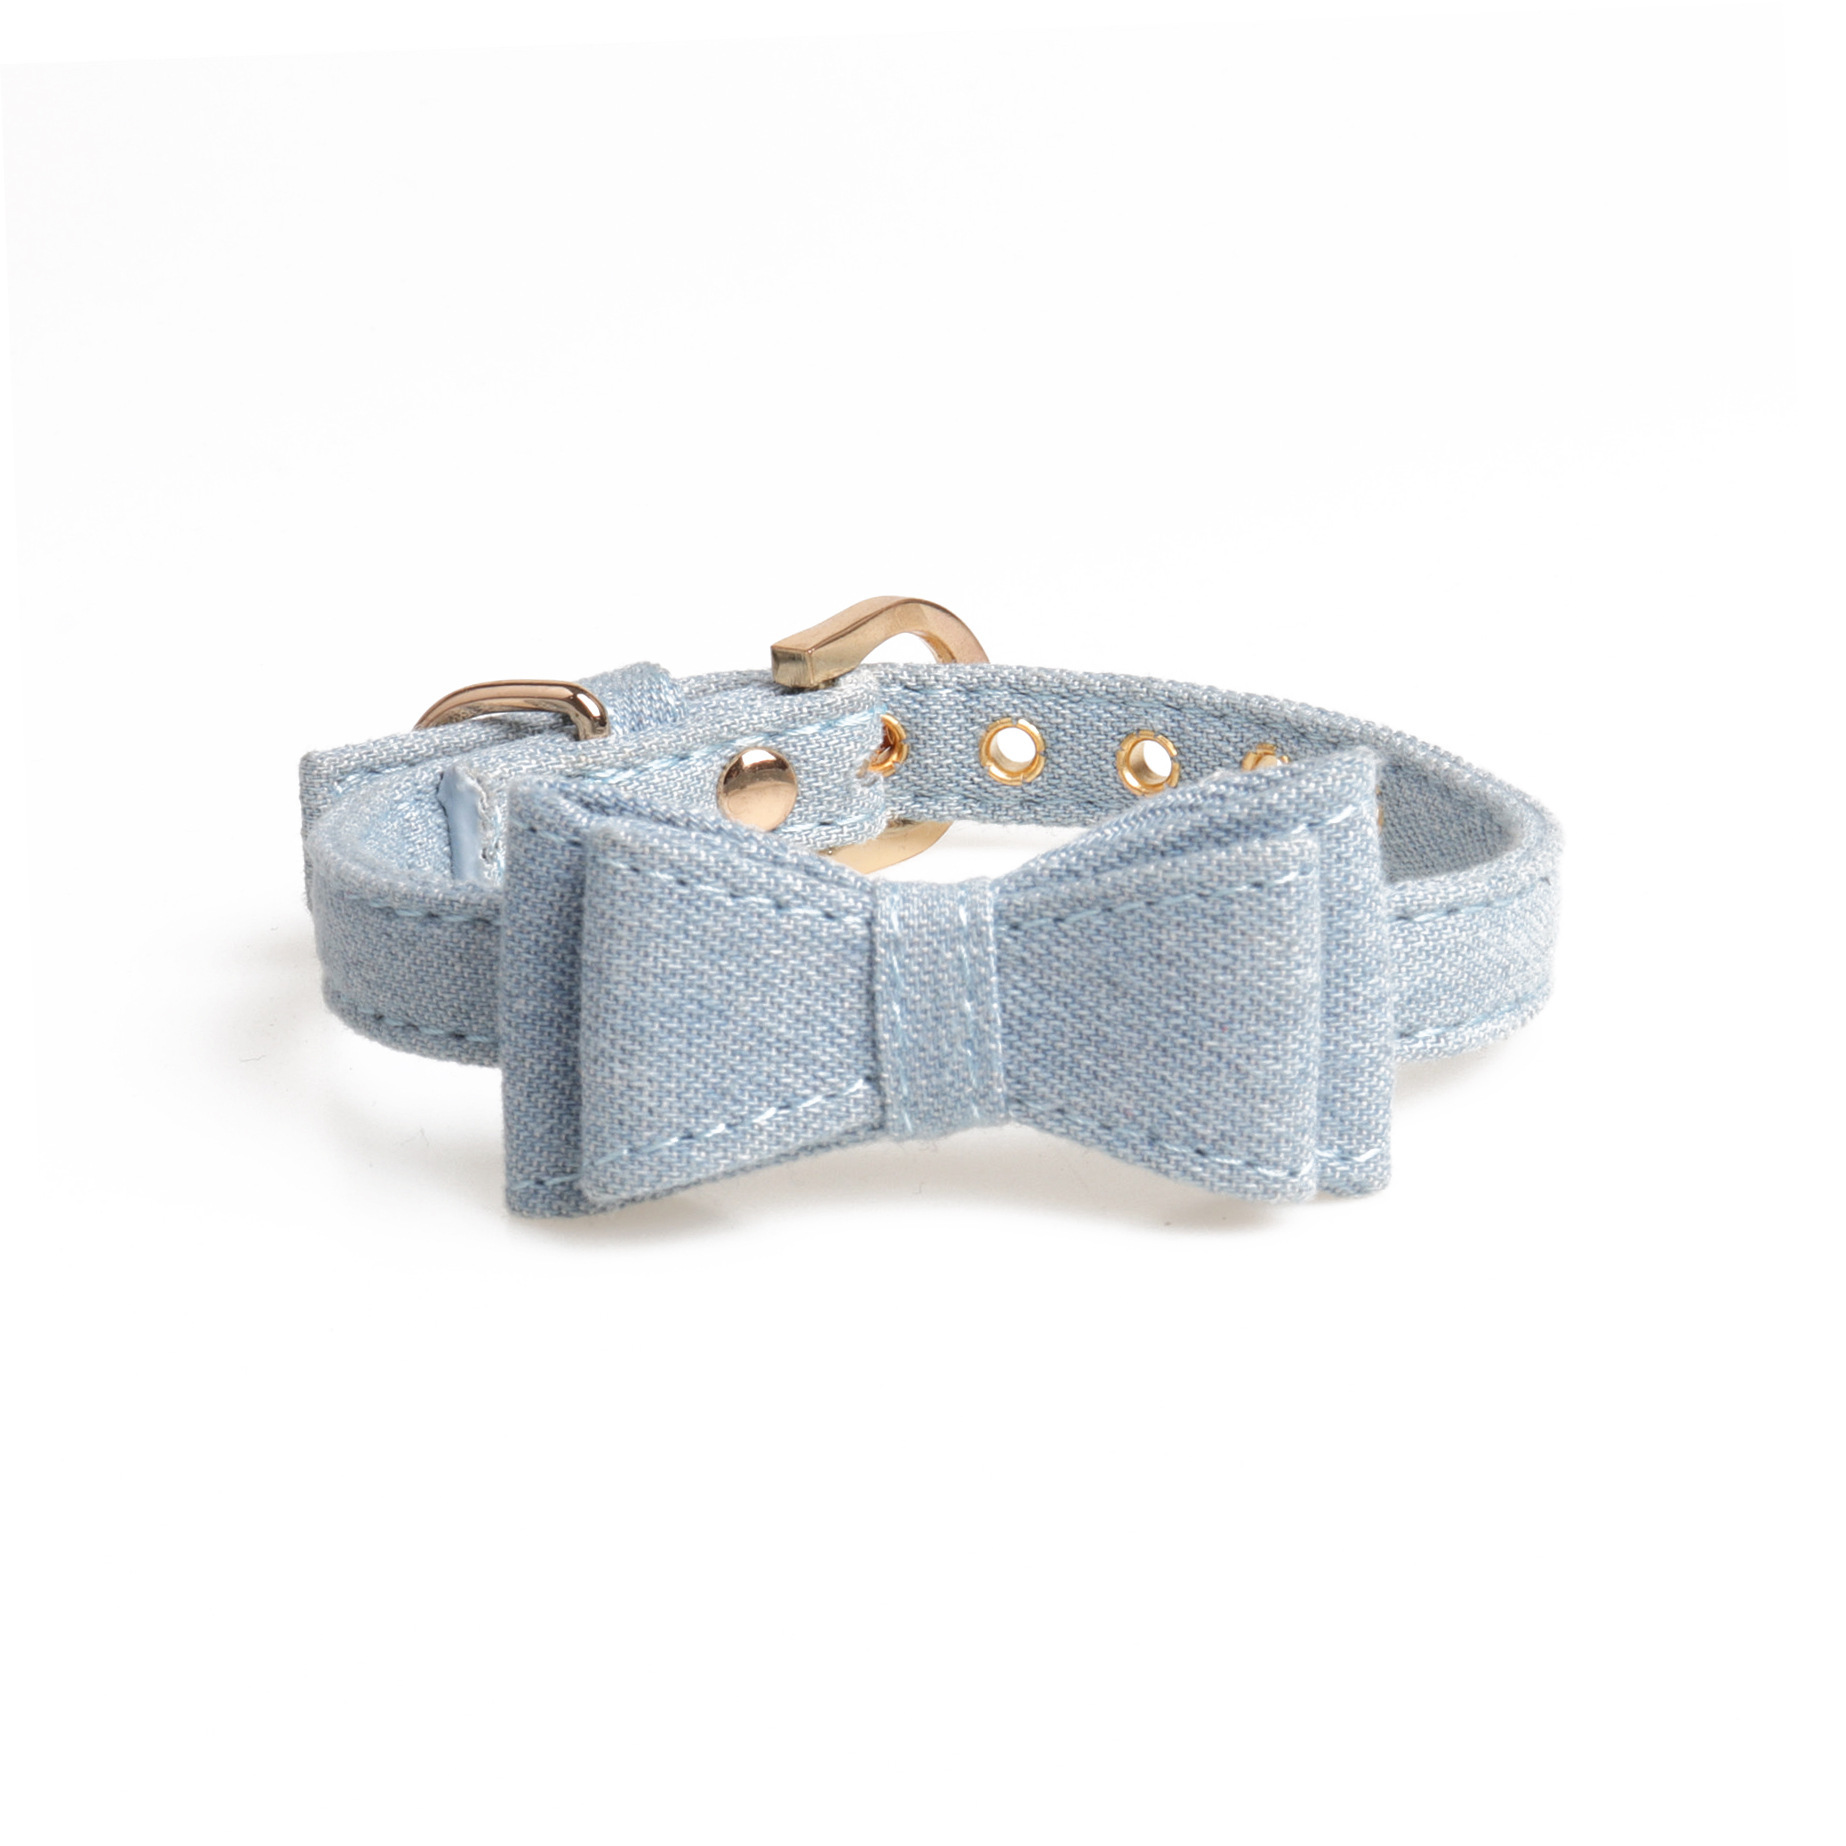 Jin Jie Te Blue Cowboy Bow Neck Ring Pet Collar Small And Medium Dog Neck Ring